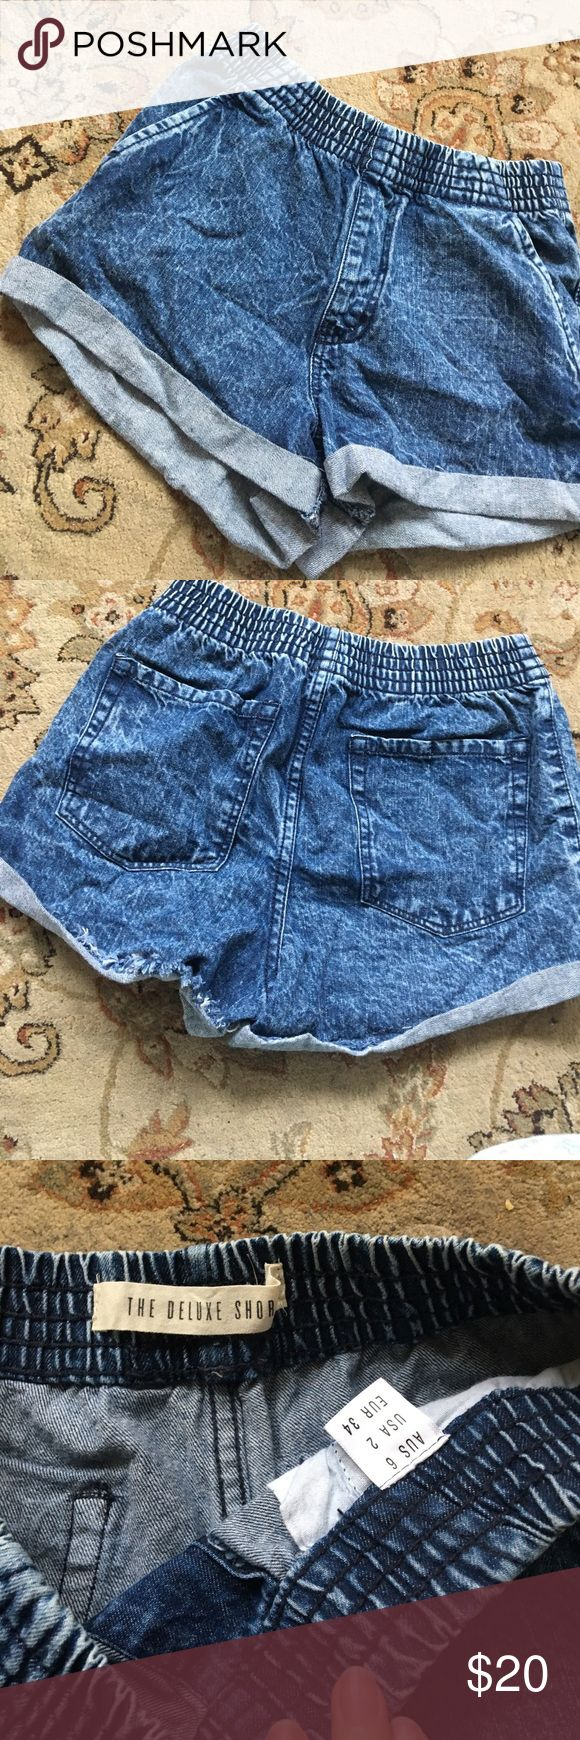 High waisted acid wash jean shorts High waisted acid washed jean shorts, worn twice, bought it at cotton on, size 2 super cute and has a stretchy waistband Shorts Jean Shorts